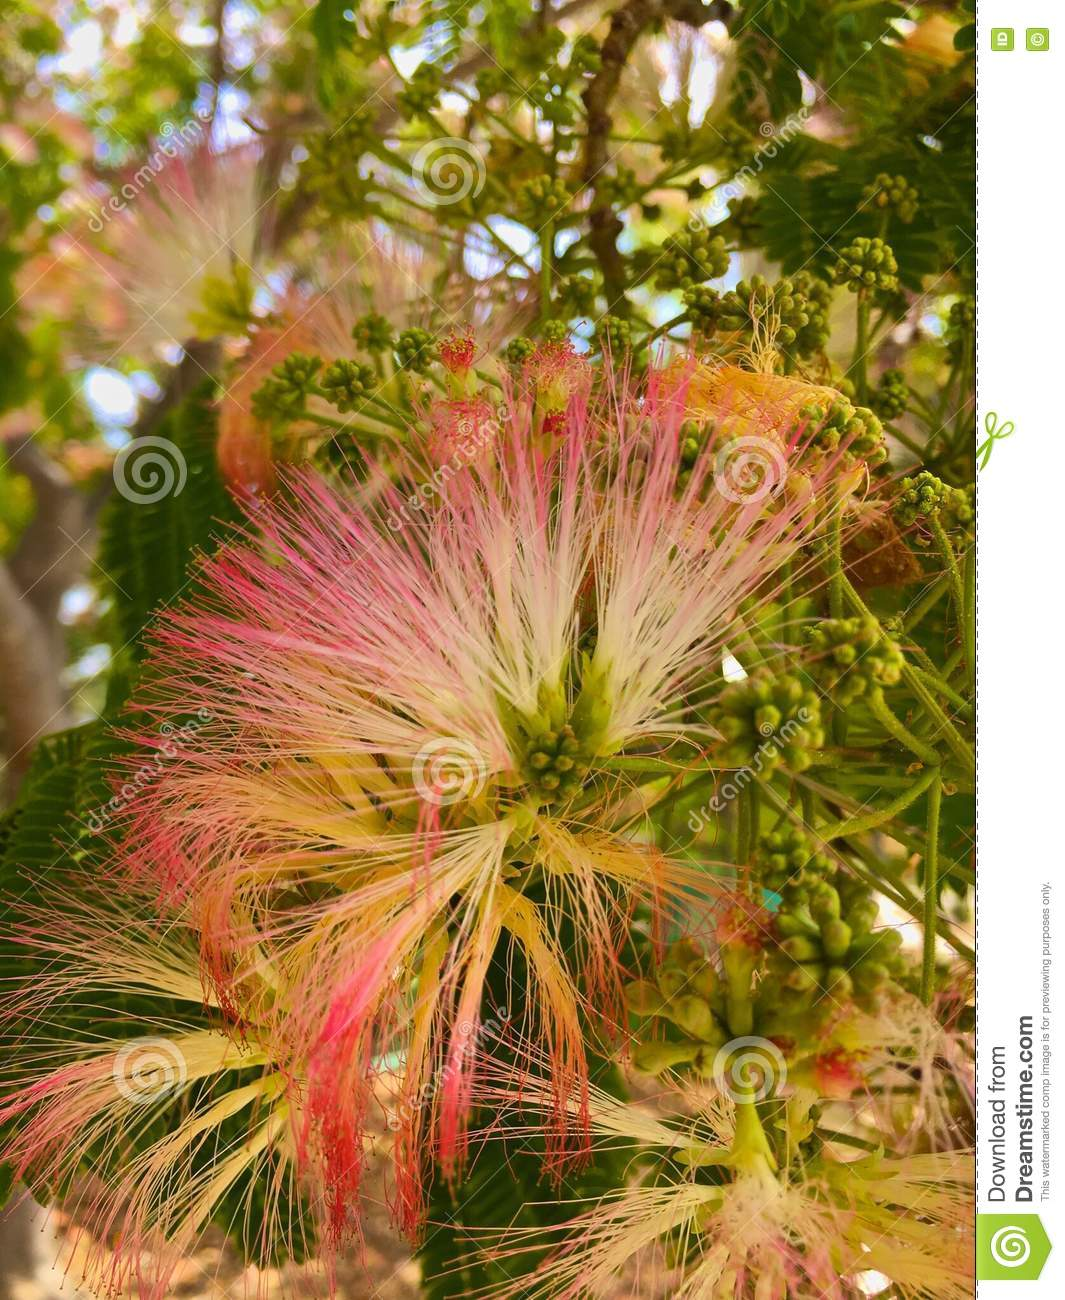 Powder Puff Tree Flowers Stock Image Image Of Tree Fluffy 72856597